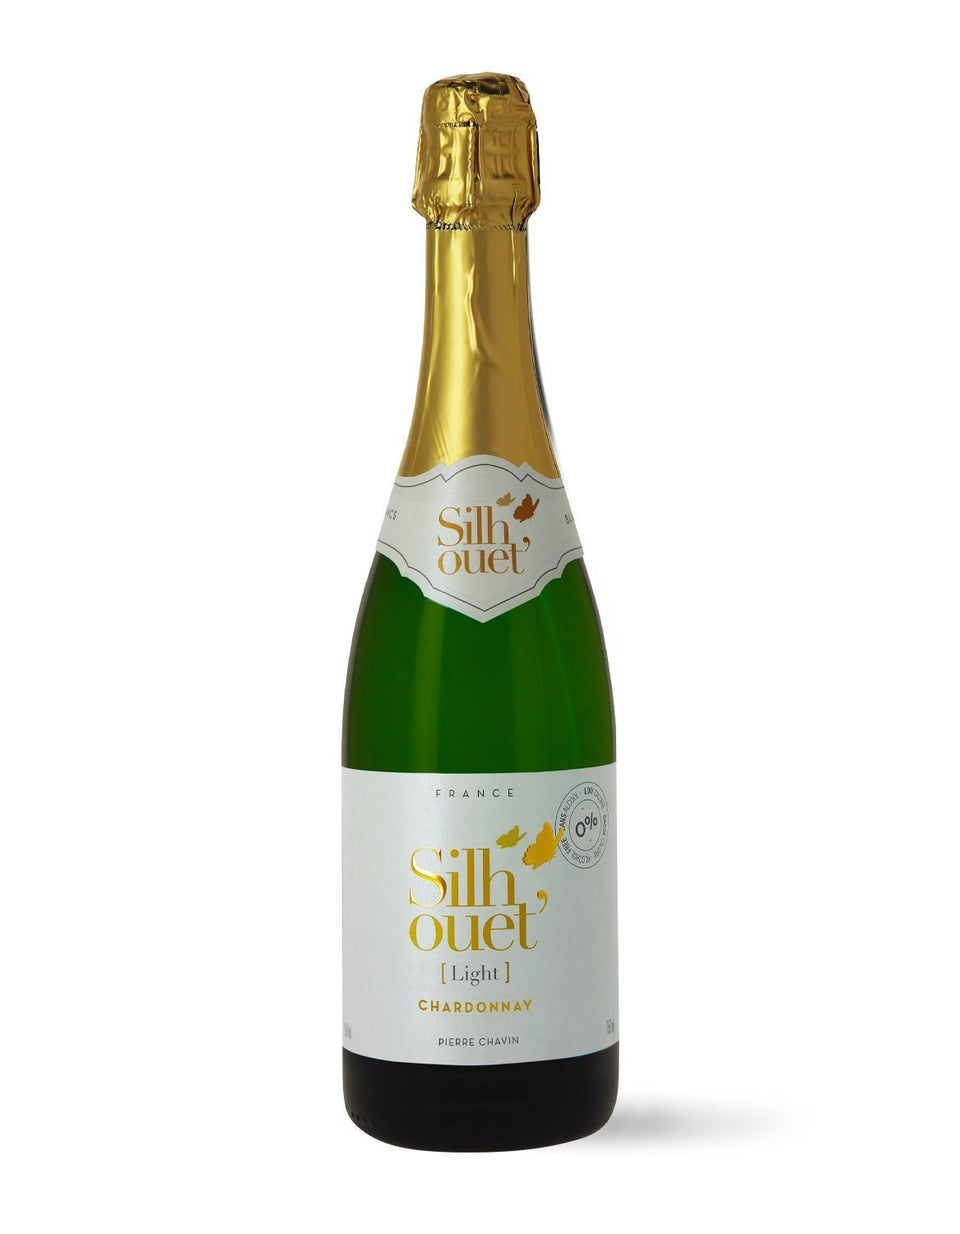 Silhouet' Sparkling Chardonnay (Light) 750mL - Craftzero